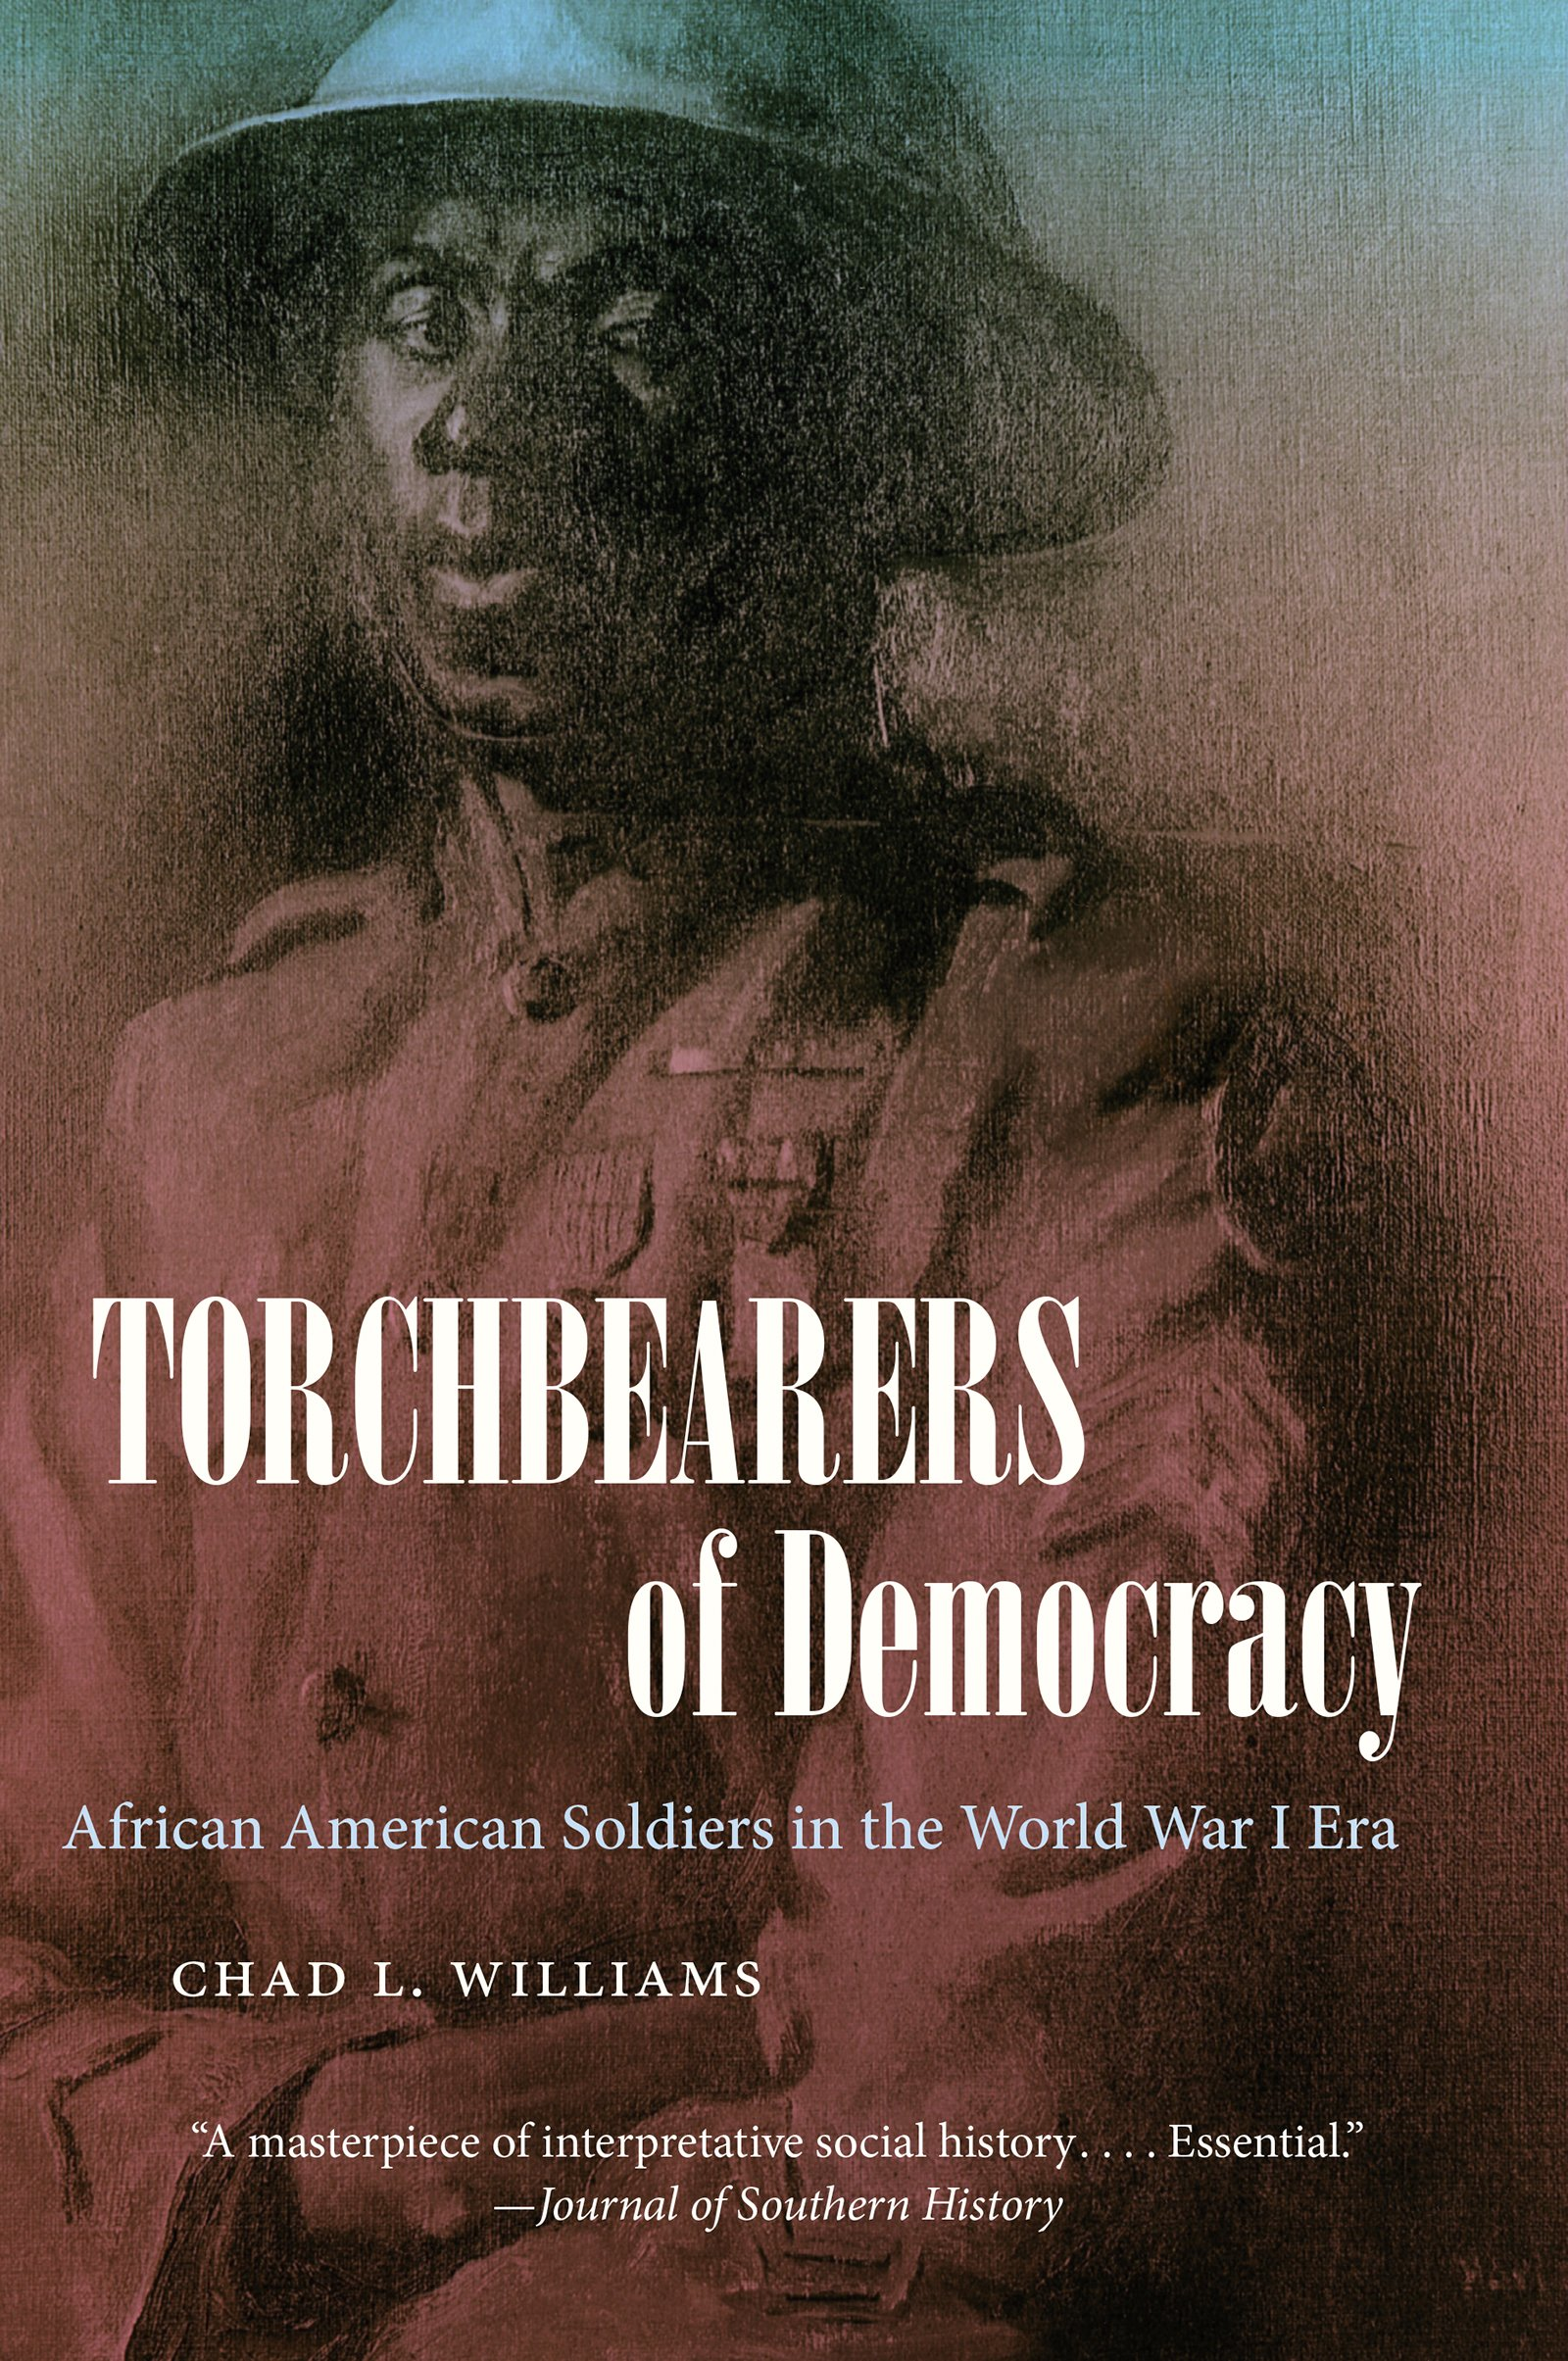 Torchbearers Of Democracy African American Soldiers In The World War I Era John Hope Franklin Series History And Culture Chad L